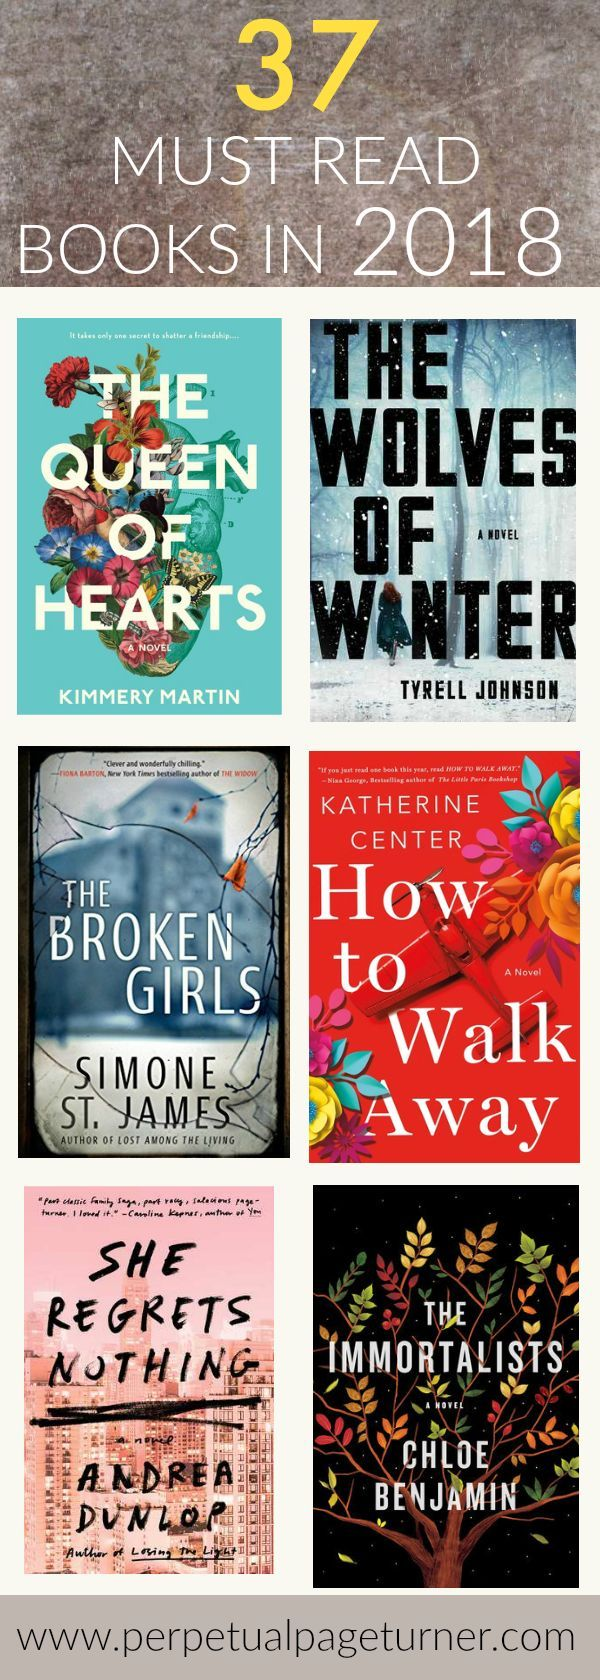 Book List: Best Books To Read In 2018